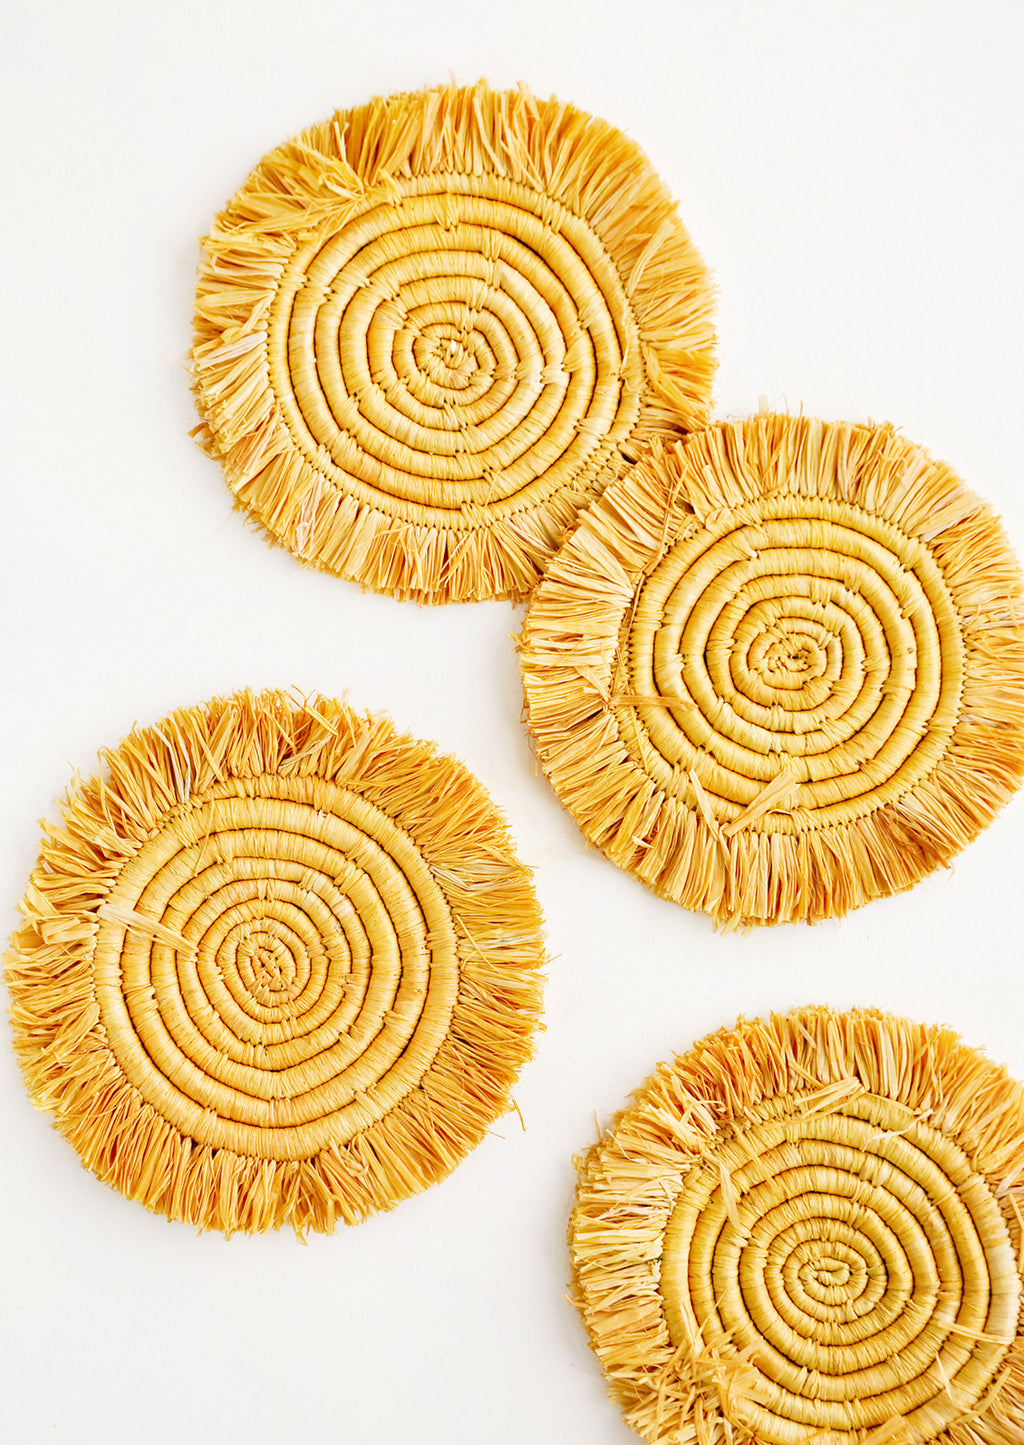 Marigold: Set of 4 Circular Raffia Coasters with Fringed Trim in Yellow